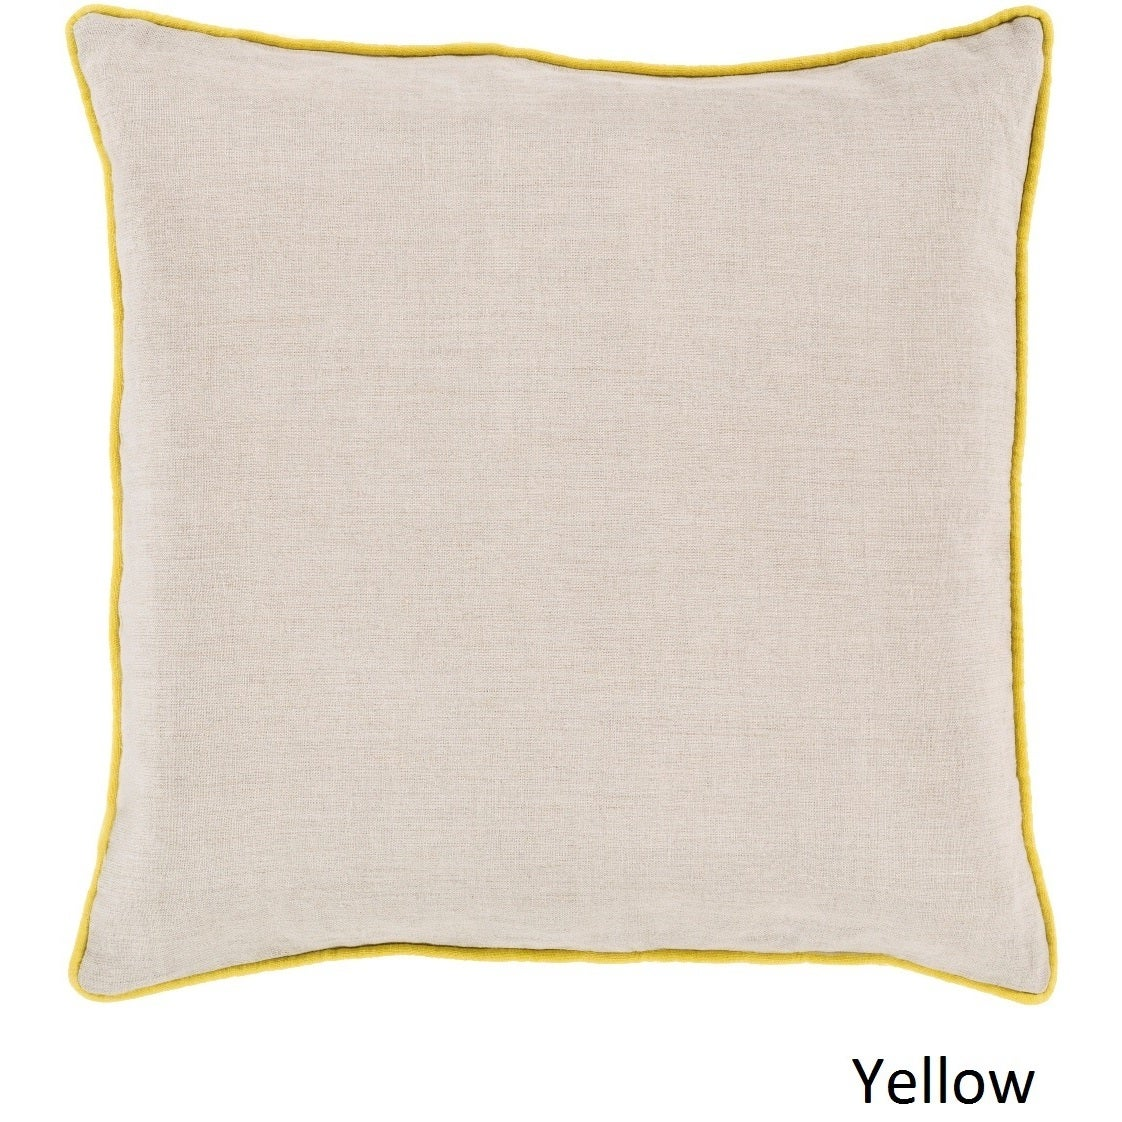 Decorative Kirwan 20 Inch Poly Or Feather Down Filled Pillow On Free Shipping Orders Over 45 10708222